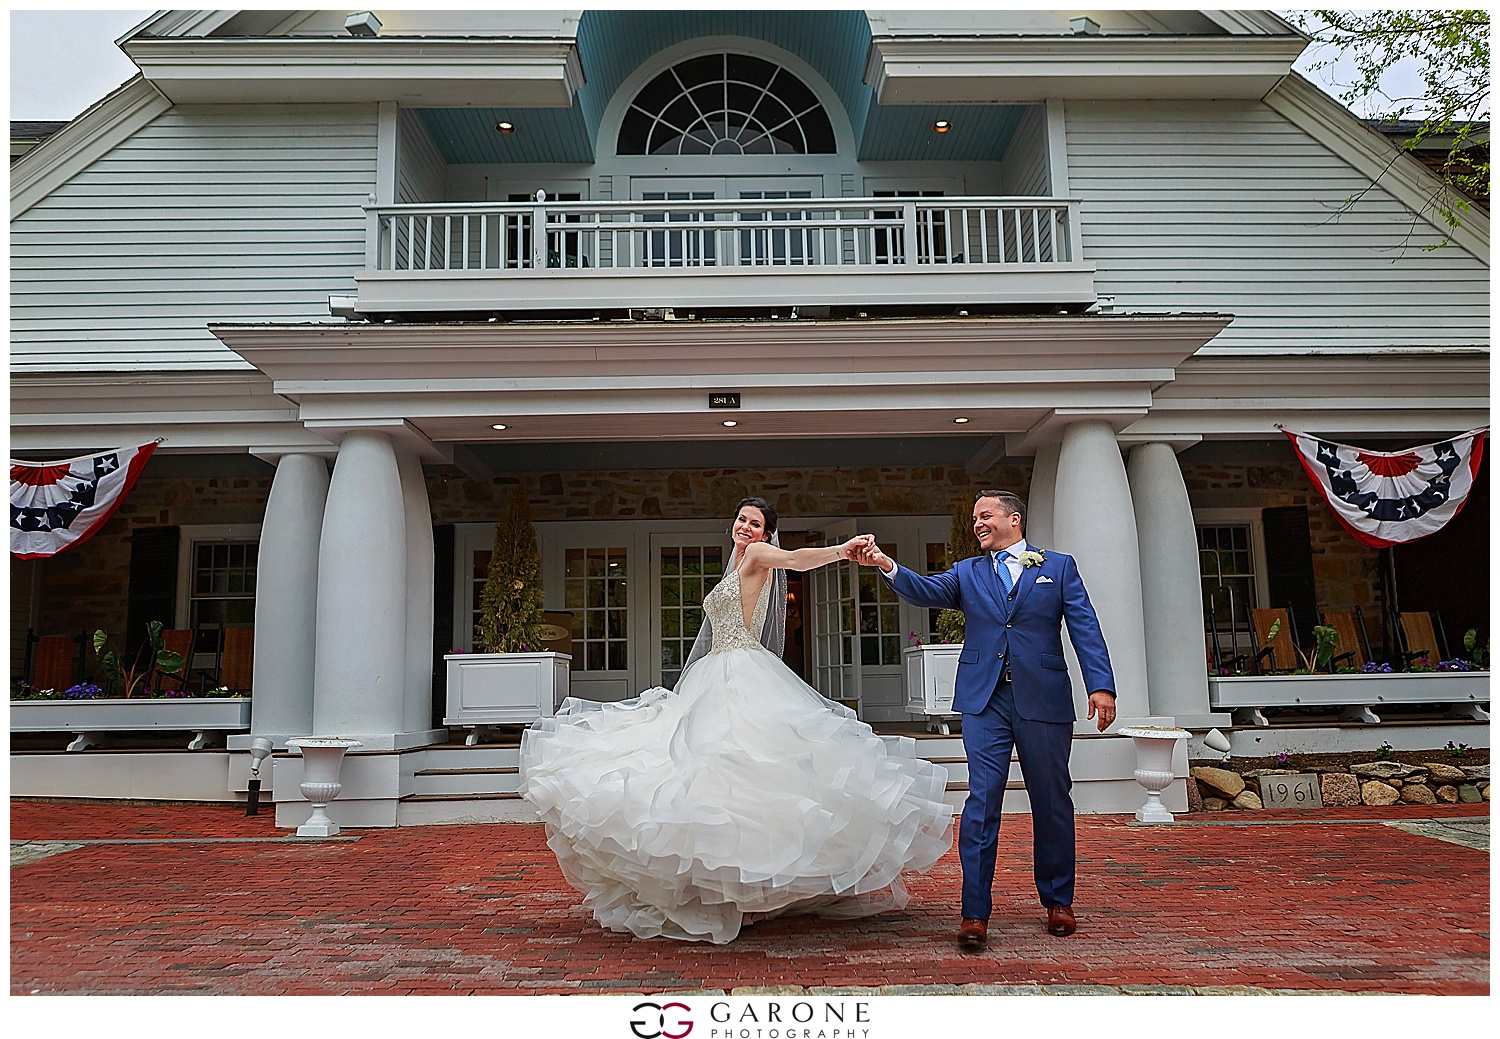 Shauna_Nathan_Carriage_House_Chuch_Landing_Lake_Winnapausakee_Wedding_0001.jpg